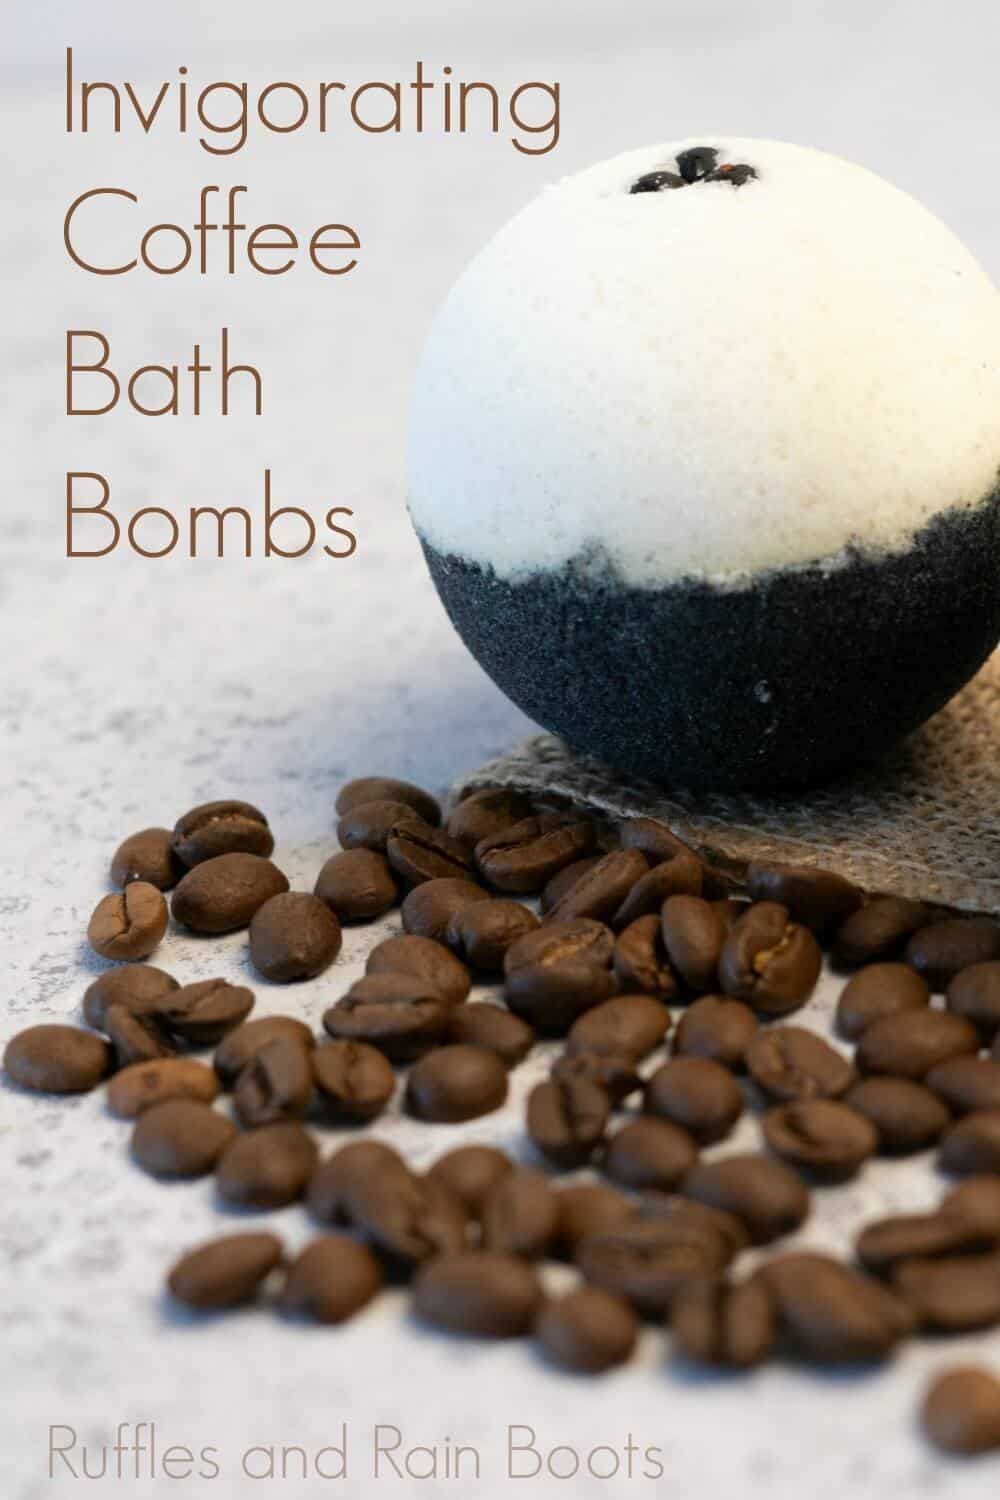 single invigorating coffee bath bombs with easy recipe on a grey table with coffee beans with text which reads invigorating coffee bath bombs